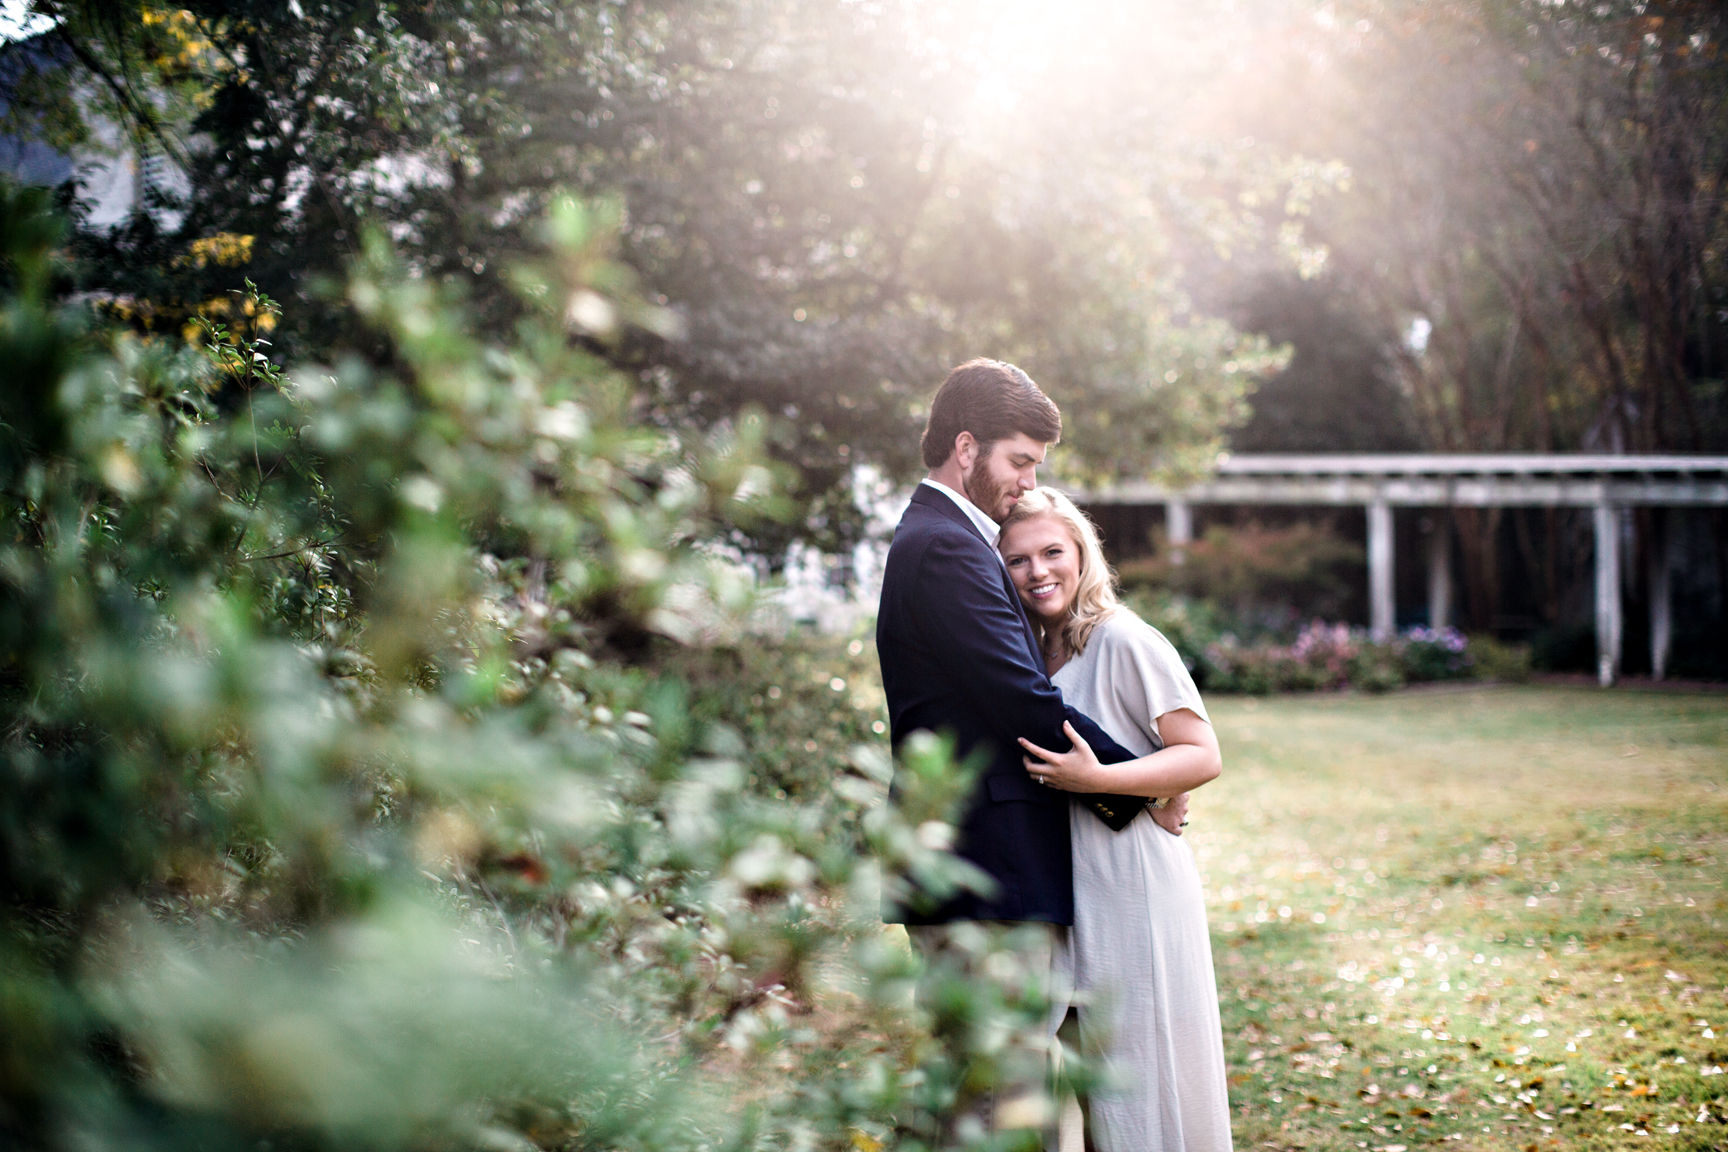 Alabama-Wedding-Photographers-Nick-Drollette-Amanda-Daniel-104.jpg